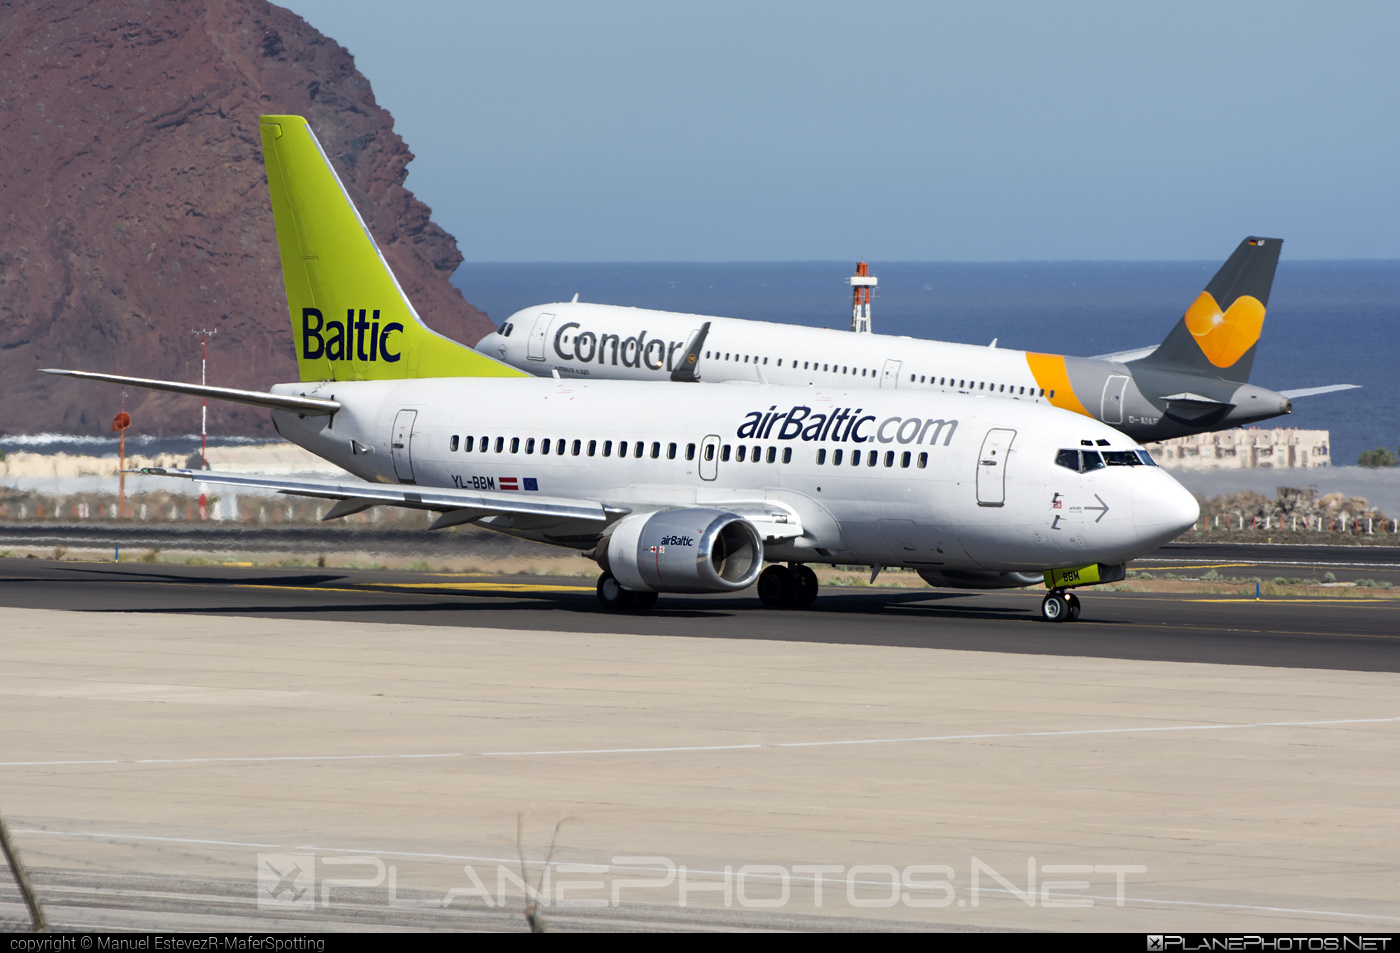 Boeing 737-500 - YL-BBM operated by Air Baltic #airbaltic #b737 #boeing #boeing737